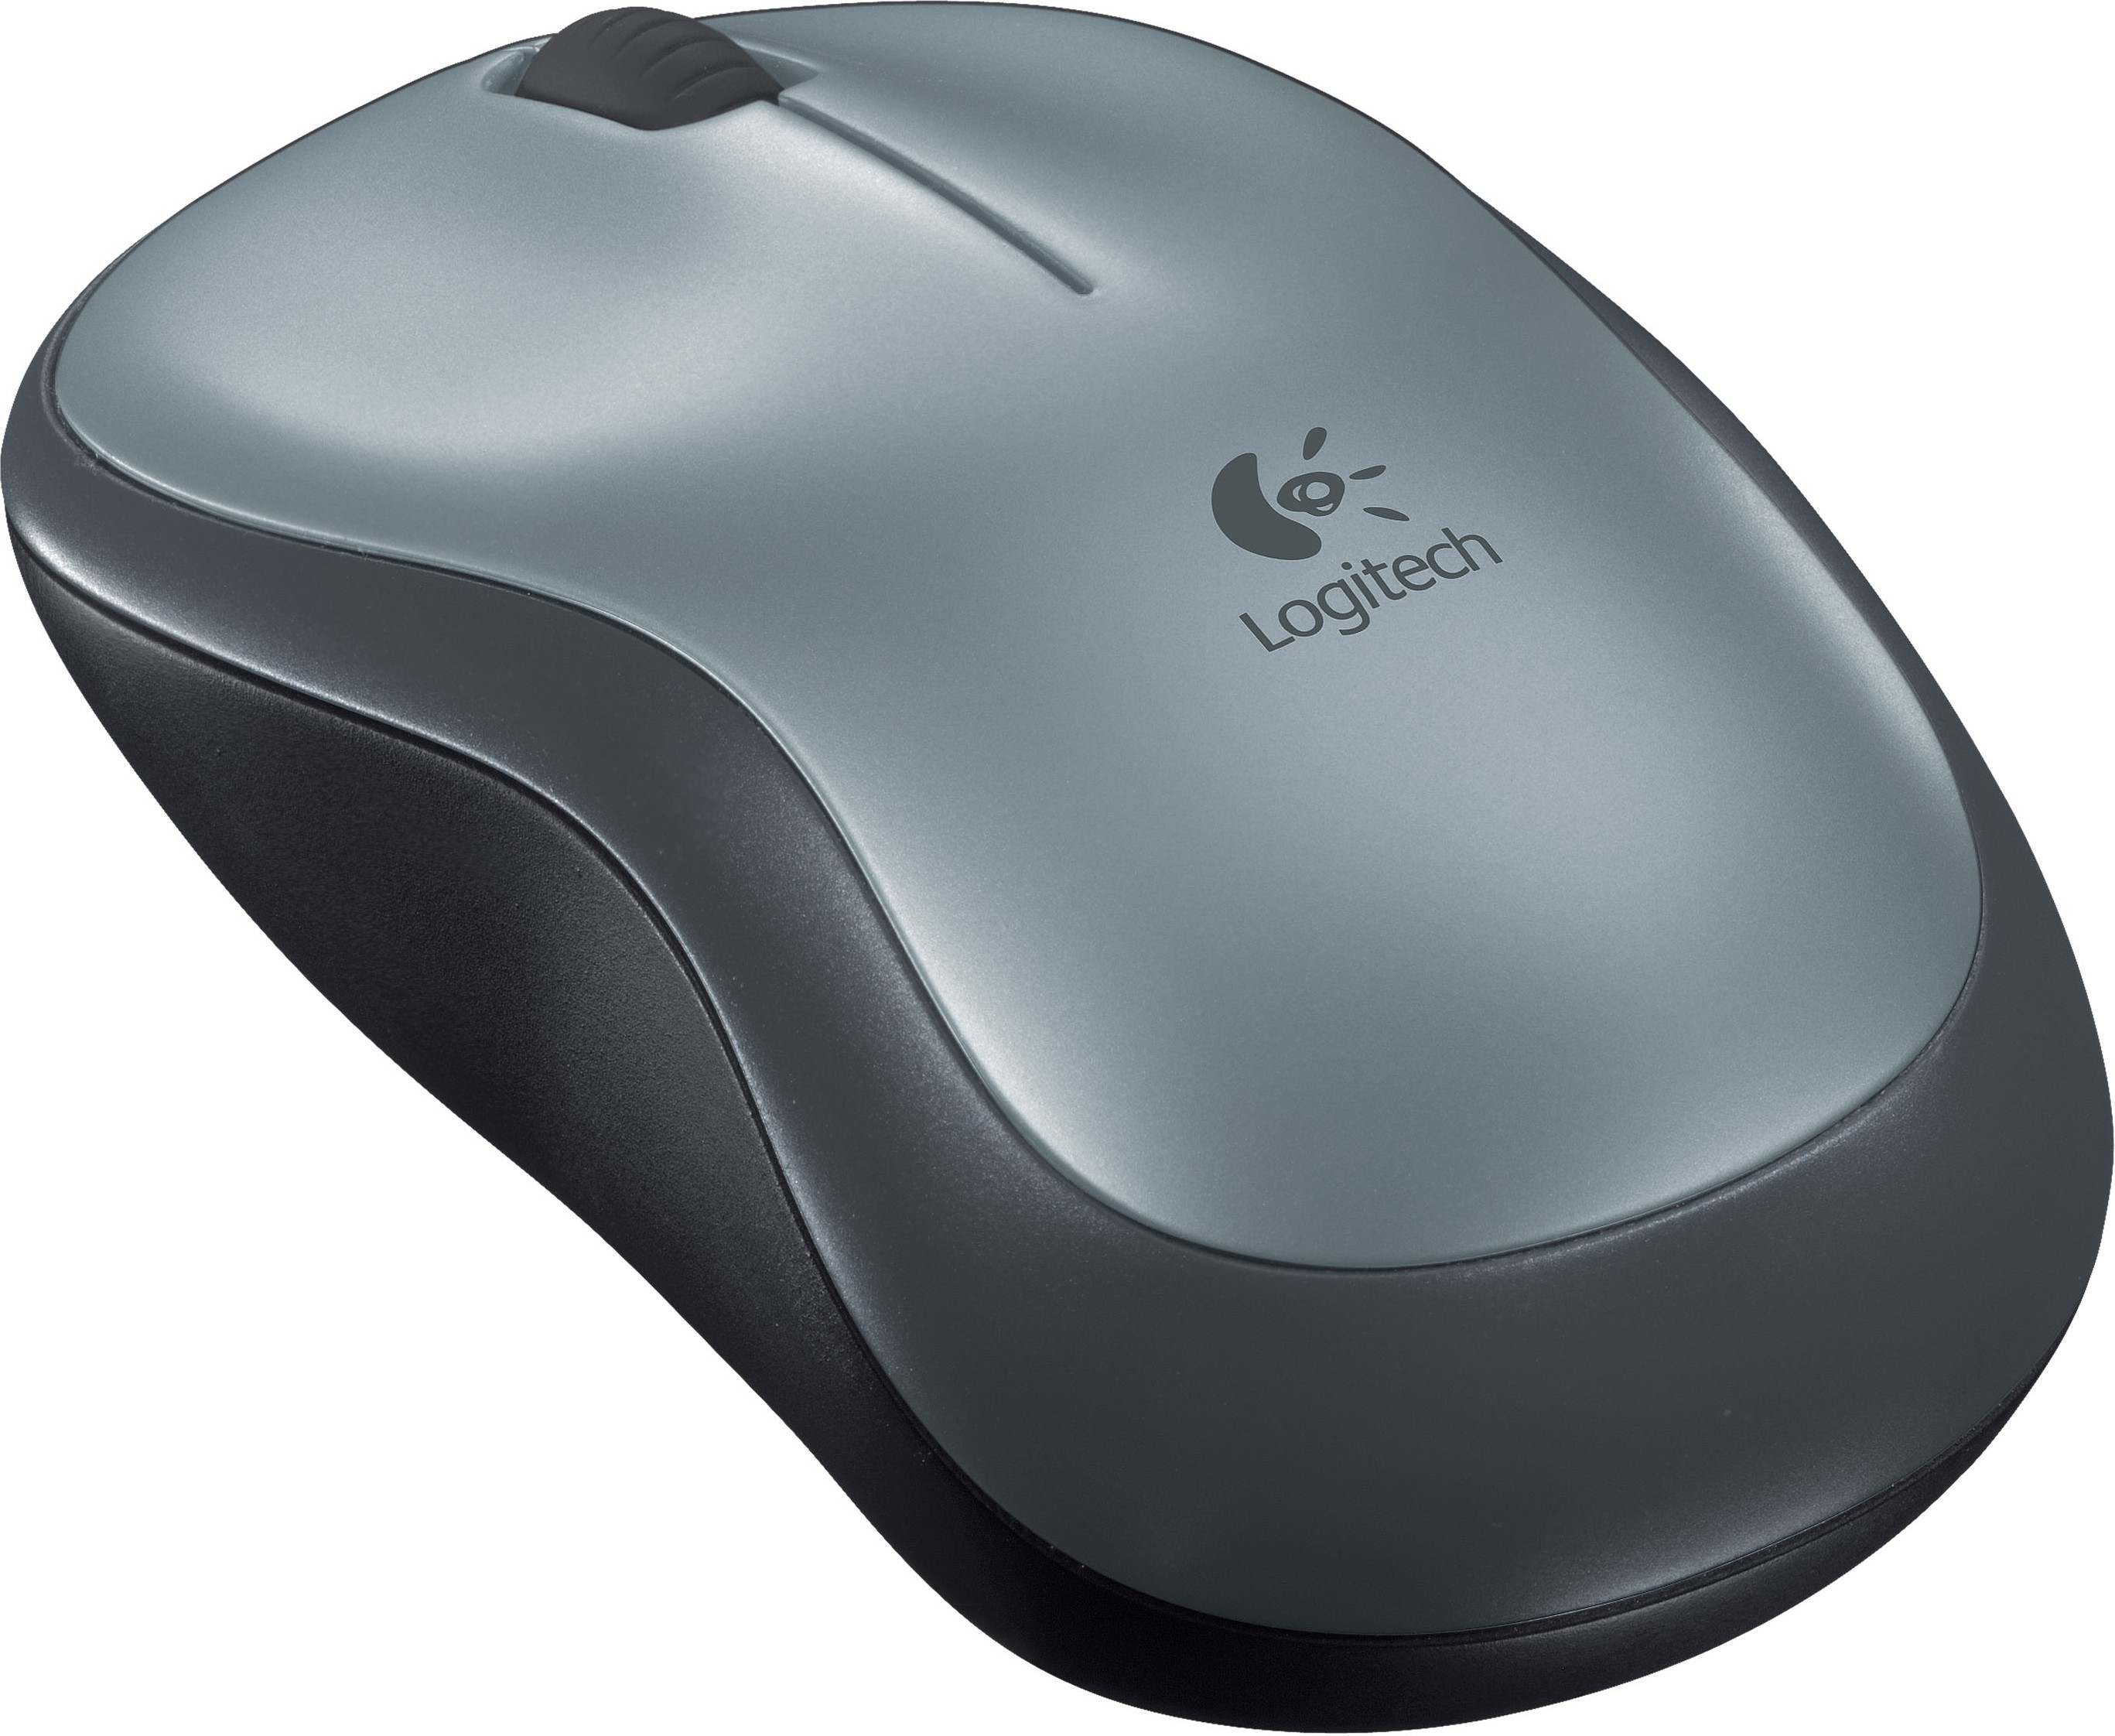 logitech m185 wireless mouse how to connect